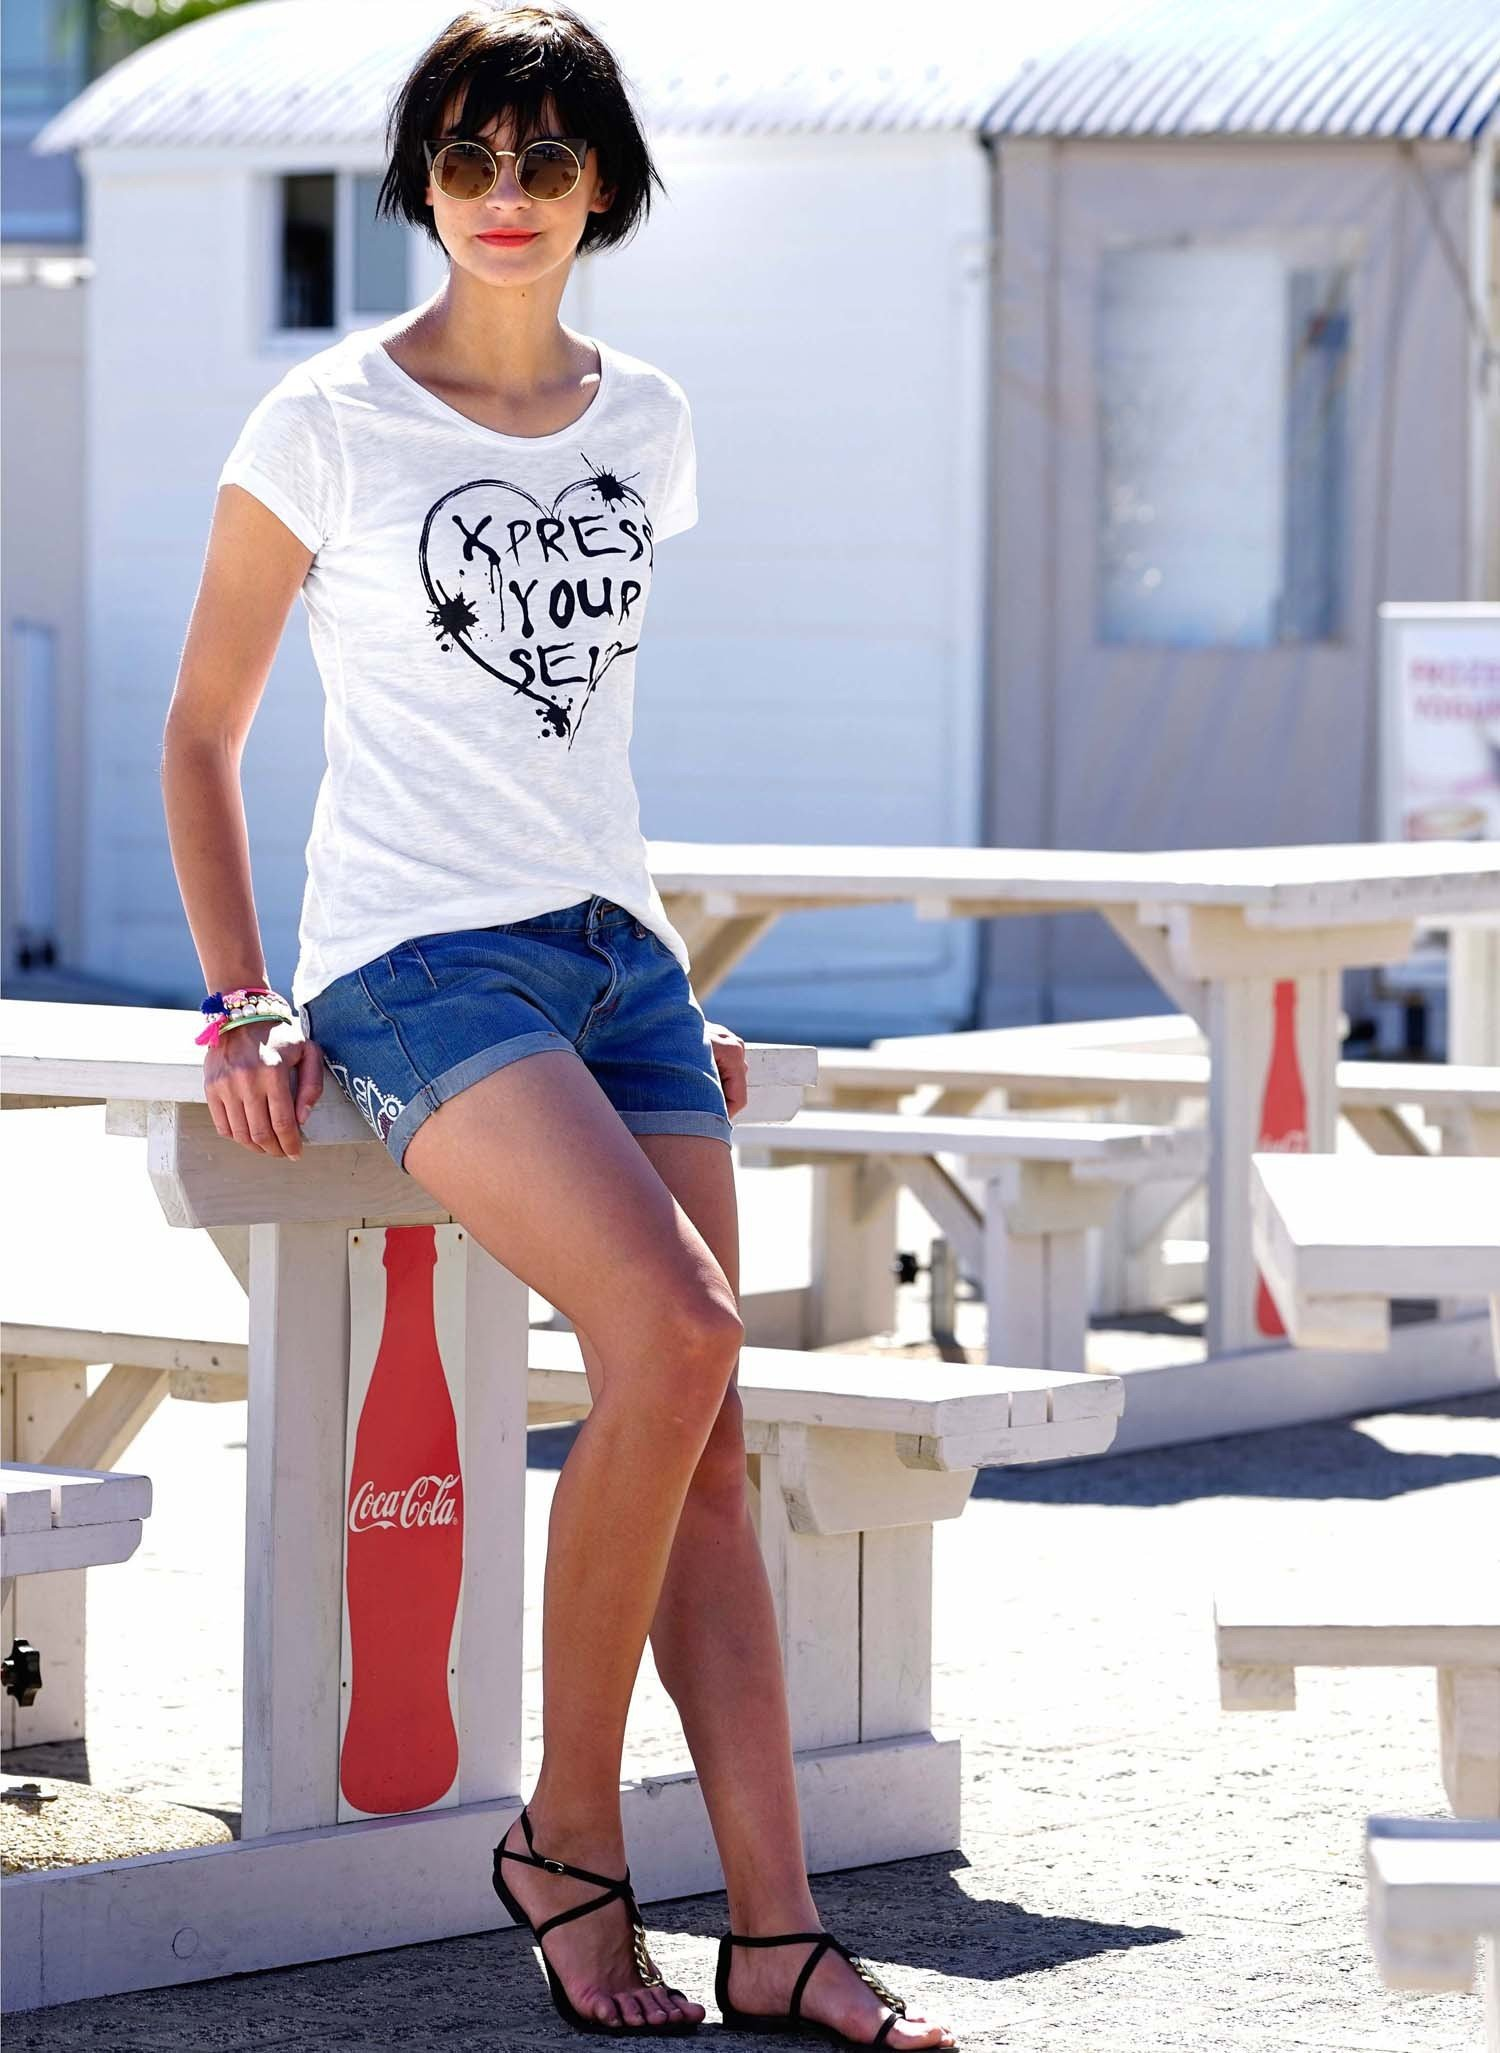 D-5P-Jeans-Shorts,Blue-Denim 34 050 - 1 - Ronja.ch